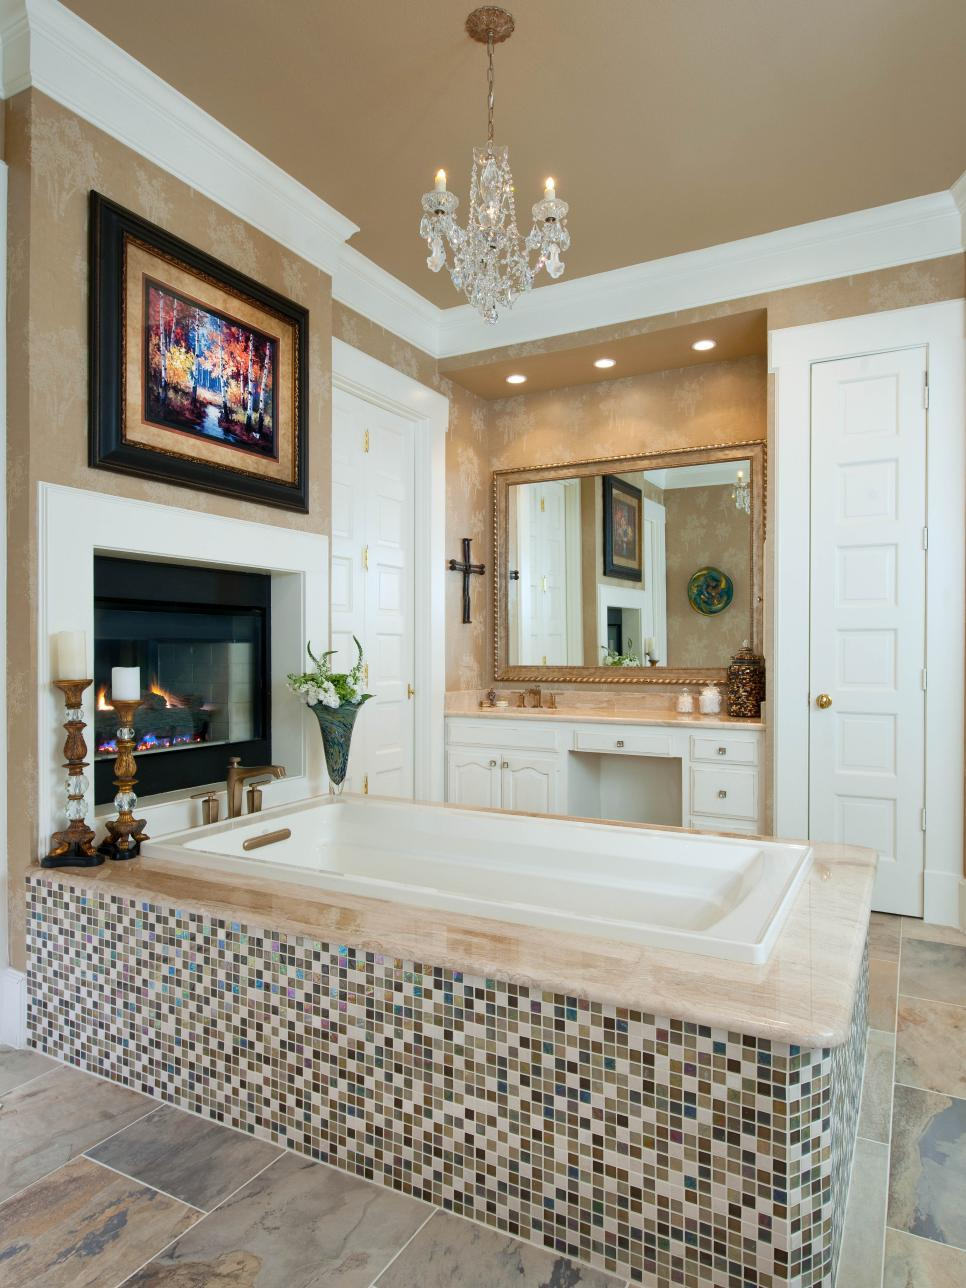 Glamorous master bathroom barbara gilbert hgtv for Bathroom designs hgtv